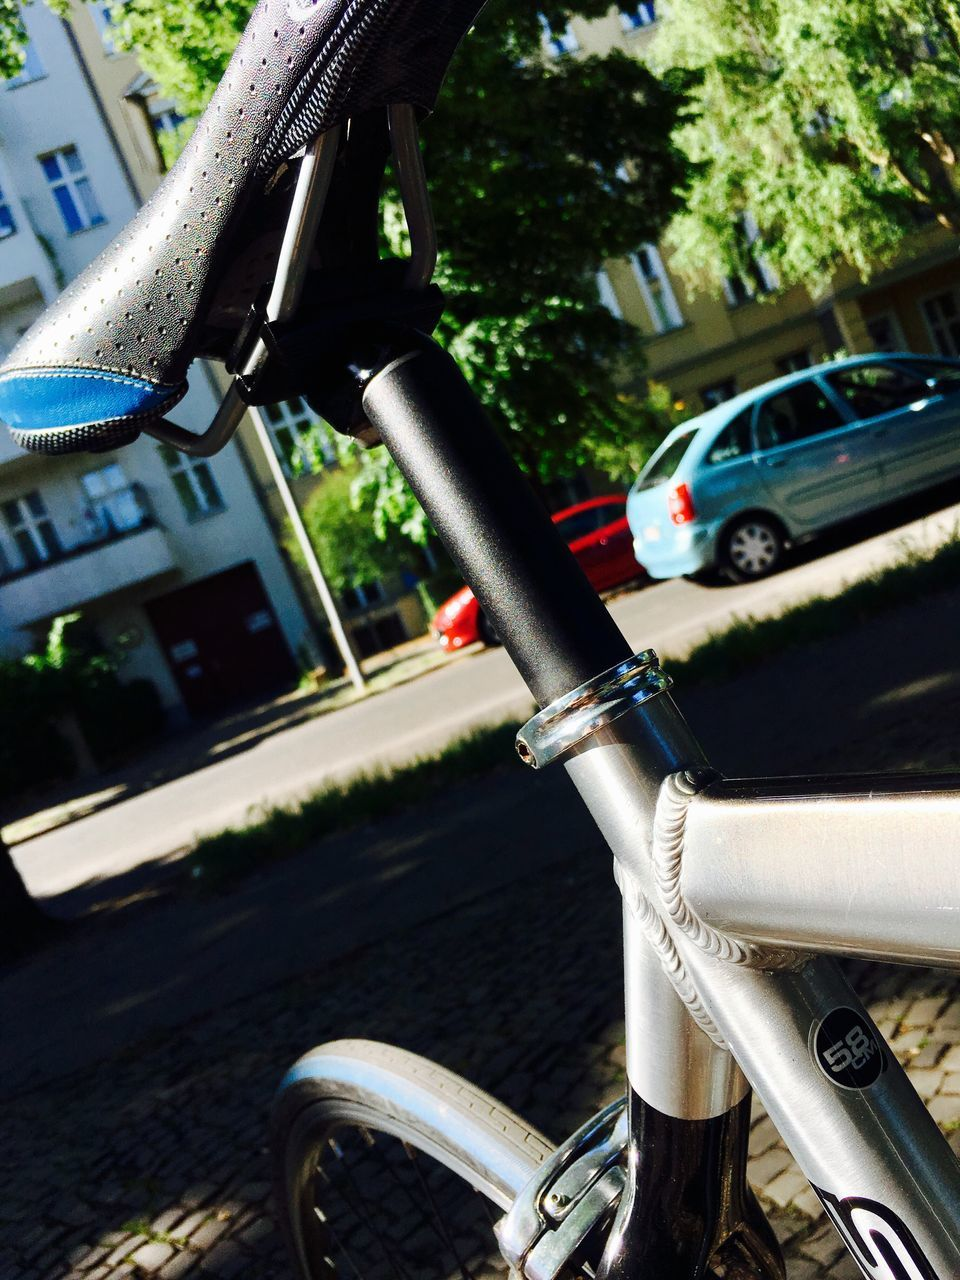 mode of transport, transportation, land vehicle, handlebar, car, bicycle, day, metal, outdoors, stationary, focus on foreground, close-up, no people, tree